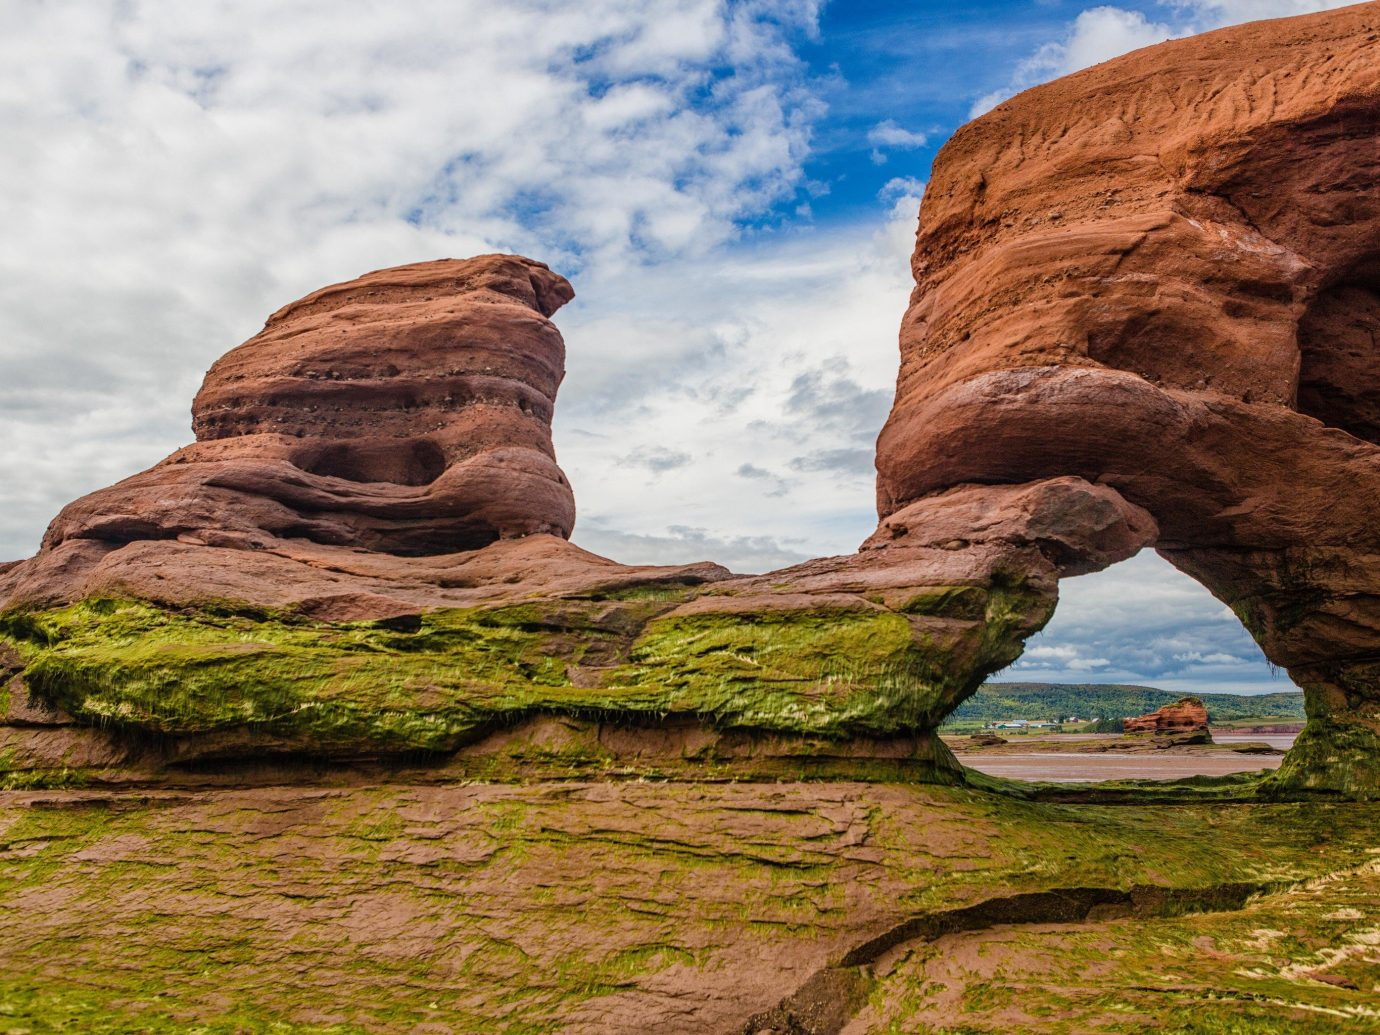 Trip Ideas outdoor rock mountain Nature water grass wilderness valley Coast arch natural arch canyon cliff badlands Sea landscape geology terrain plateau formation cape material national park overlooking hillside